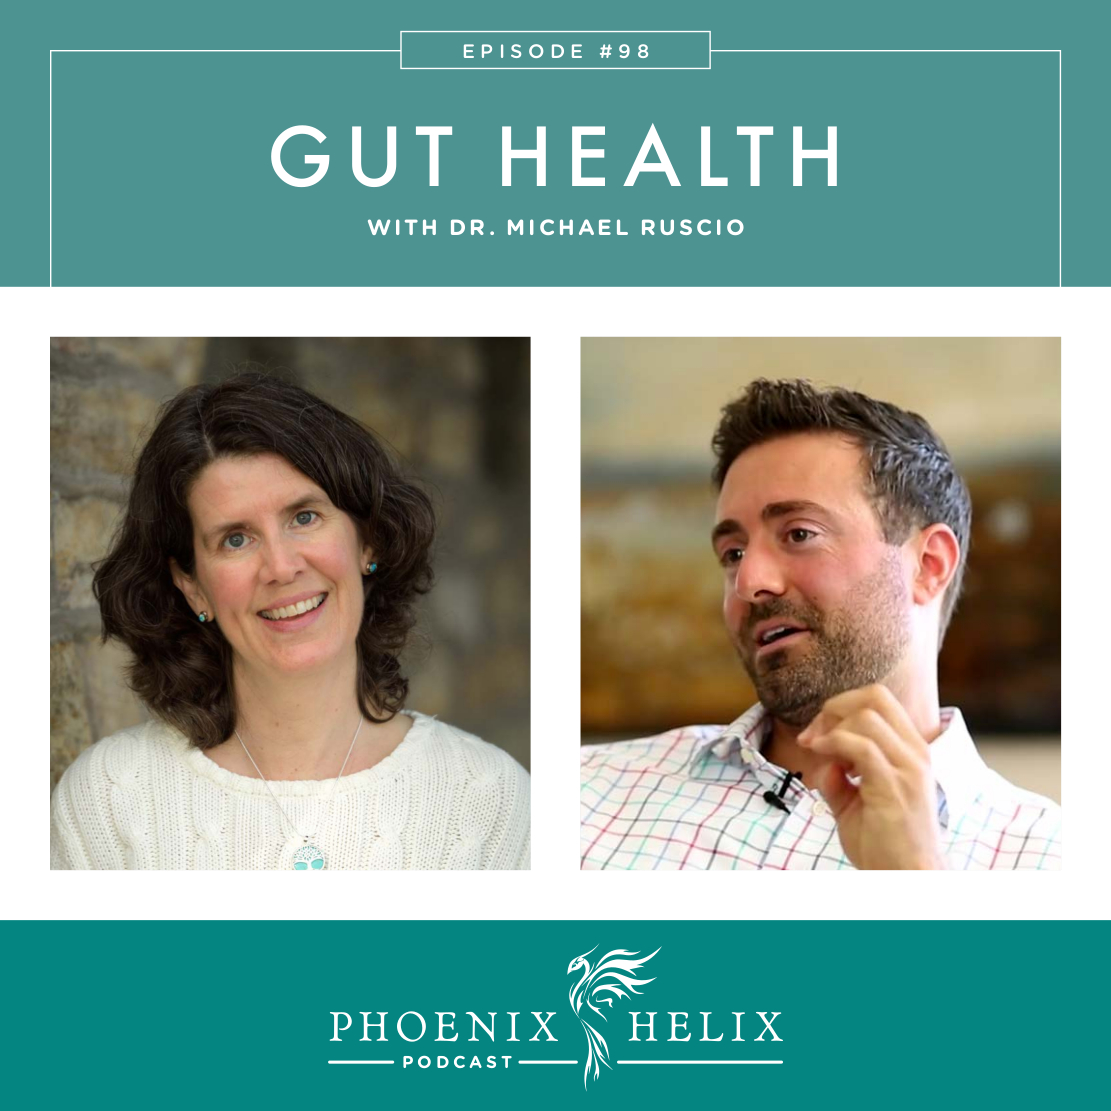 Gut Health with Dr. Michael Ruscio | Phoenix Helix Podcast